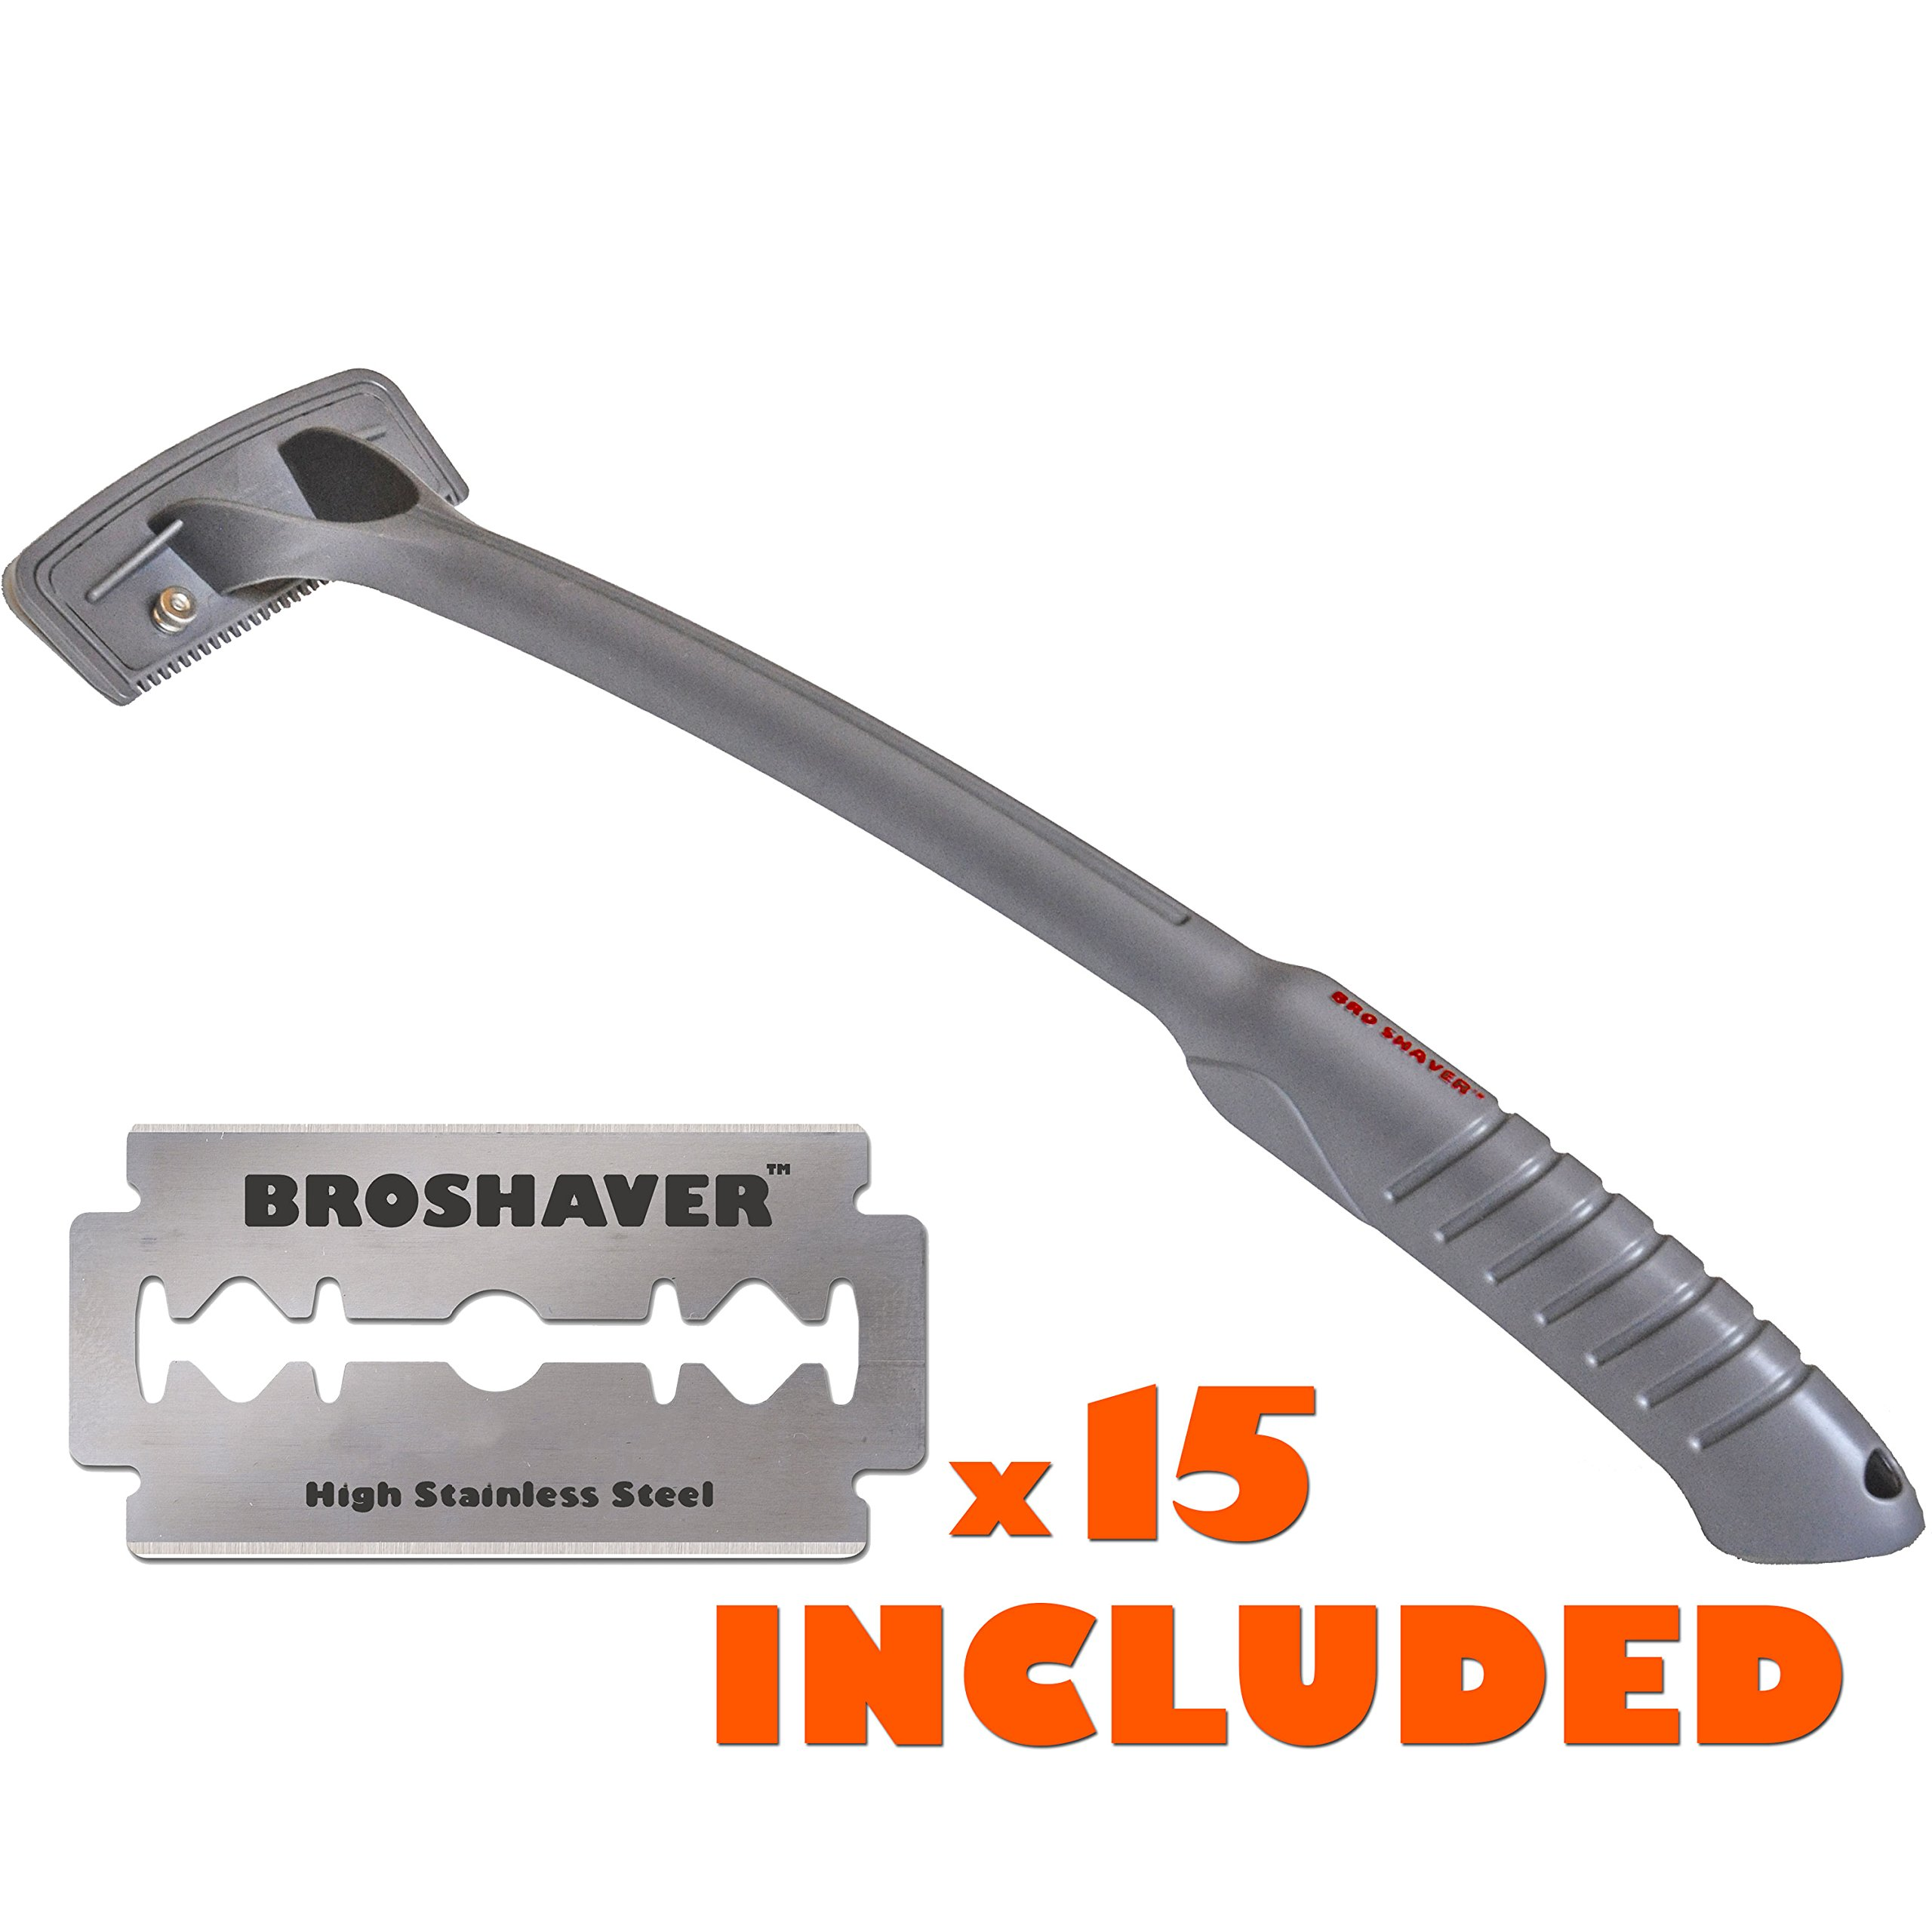 BRO SHAVER Back Hair Shaver, Uses Standard Double Edge (DE) Safety Razor Blades, Stainless Steel Bolts, Cheap refills, Blades cost pennies, 15 razors included, Do-it-yourself